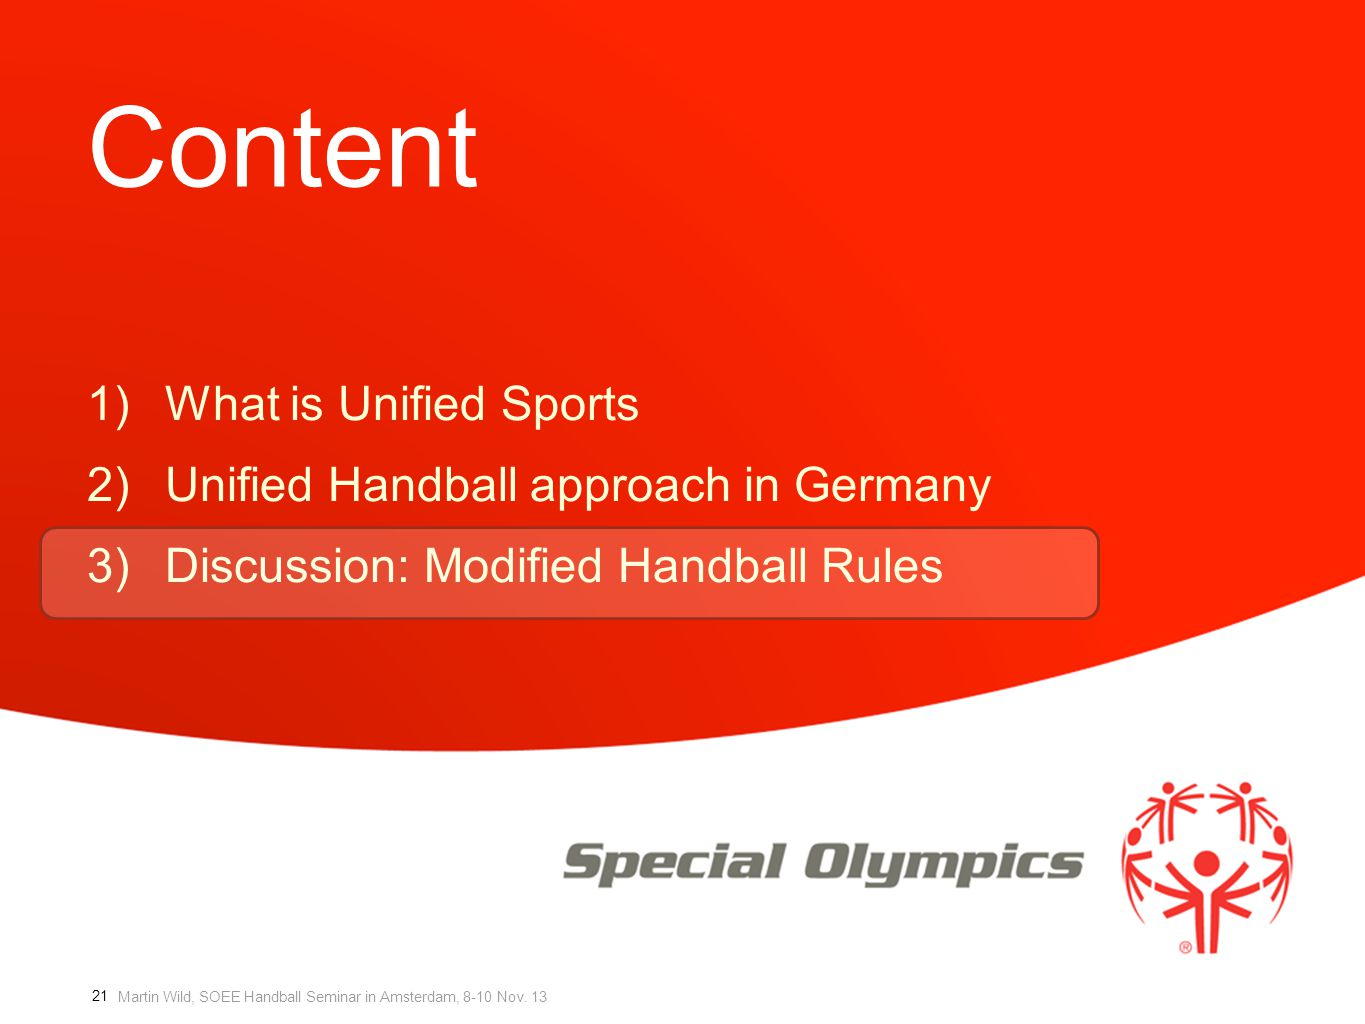 Martin Wild, SOEE Handball Seminar in Amsterdam, 8-10 Nov. 13 Content 1)What is Unified Sports 2)Unified Handball approach in Germany 3)Discussion: Mo